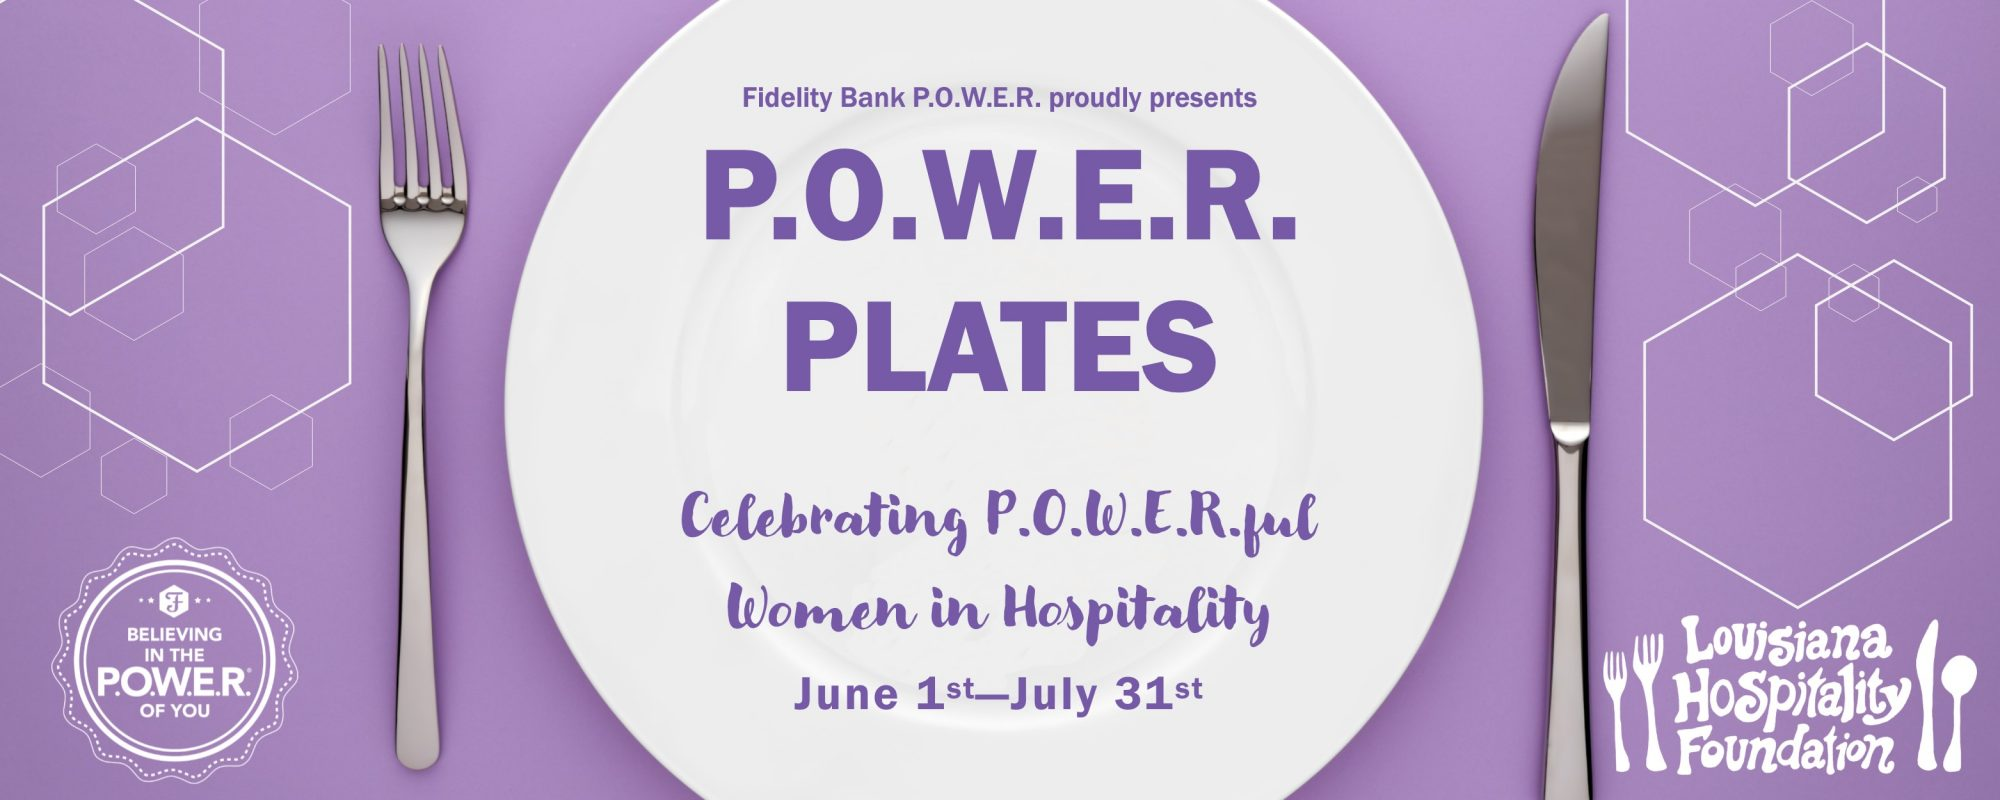 POWER Plates - Banner 1